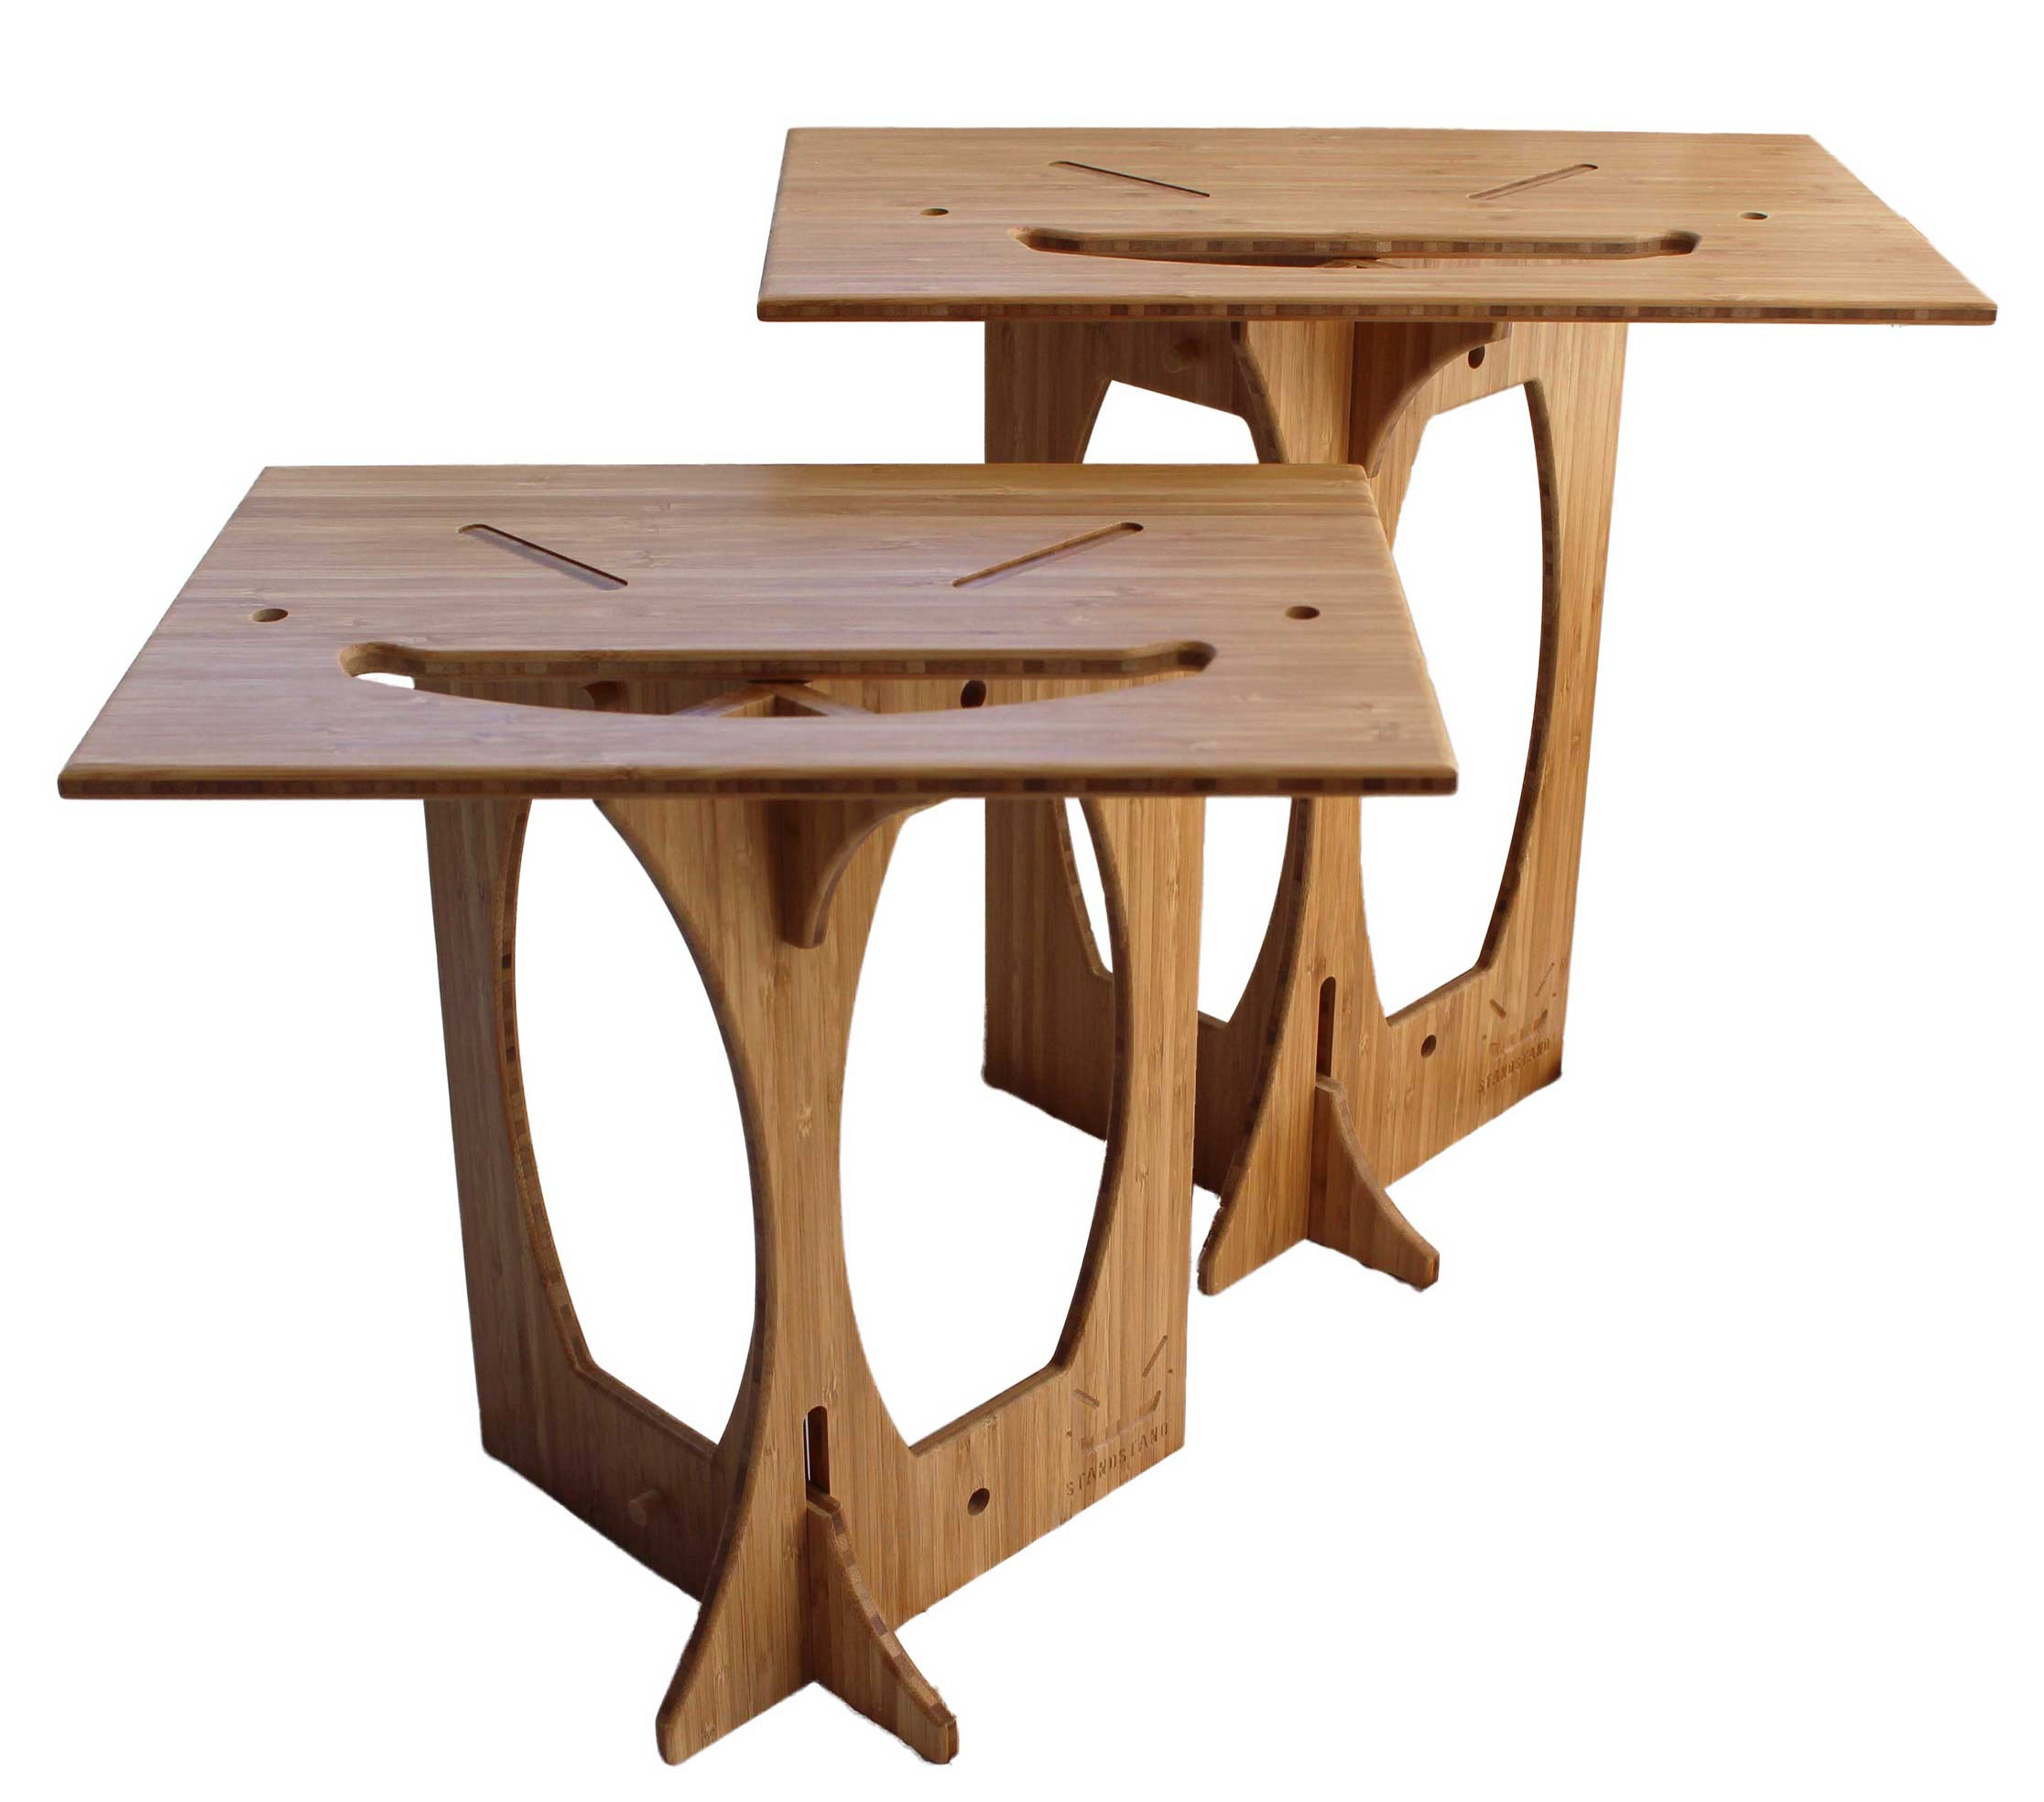 Becca stool bamboo furniture modern bamboo Multifunctional Product Description Target Standstand De Luxe In Bamboo Standstand Portable Standing Desk